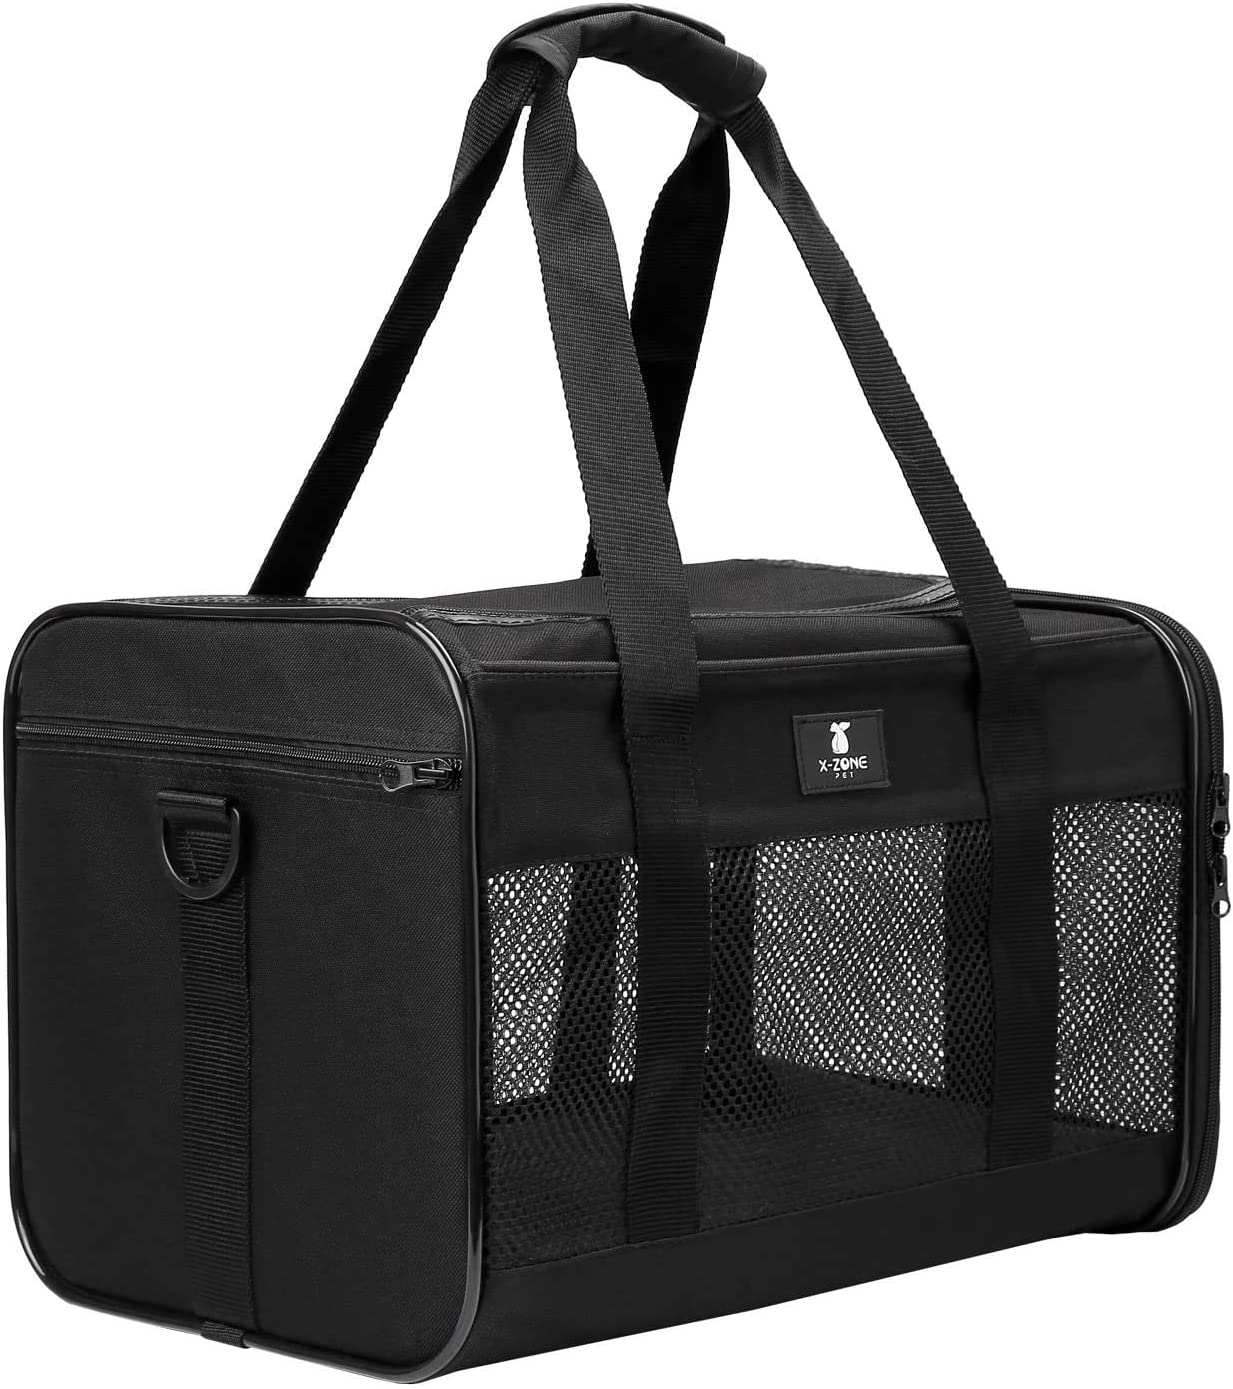 X-ZONE PET Airline Approved Soft-Sided Pet Travel Carrier for Dogs and Cats, Medium Cats Small Cats Carrier,Dog Carrier for Small Dogs, Portable Pet Travel Carrier